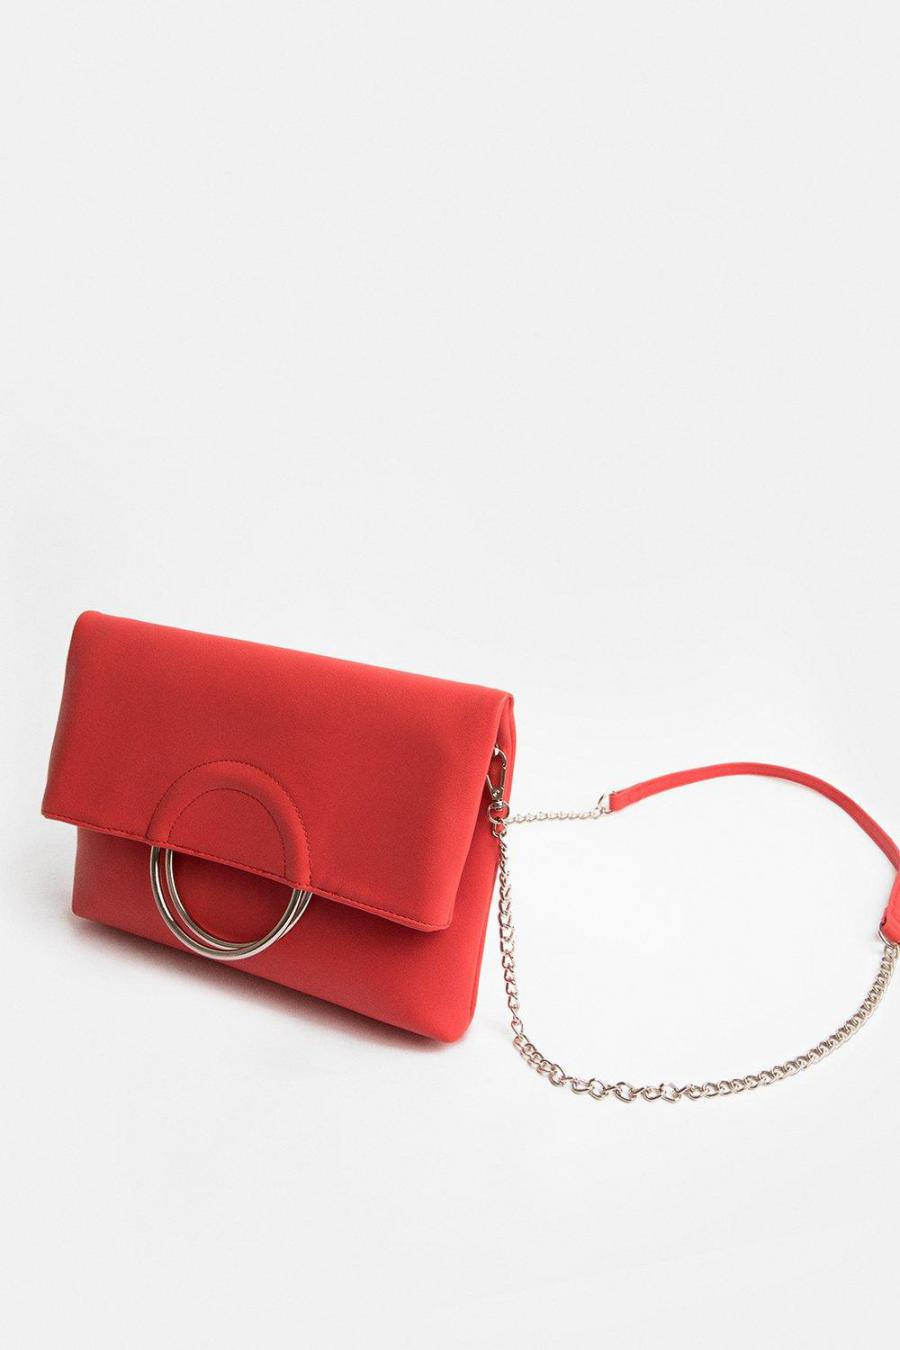 Coast Clutch Bag | Womens Ring Detail Clutch Bag Coral